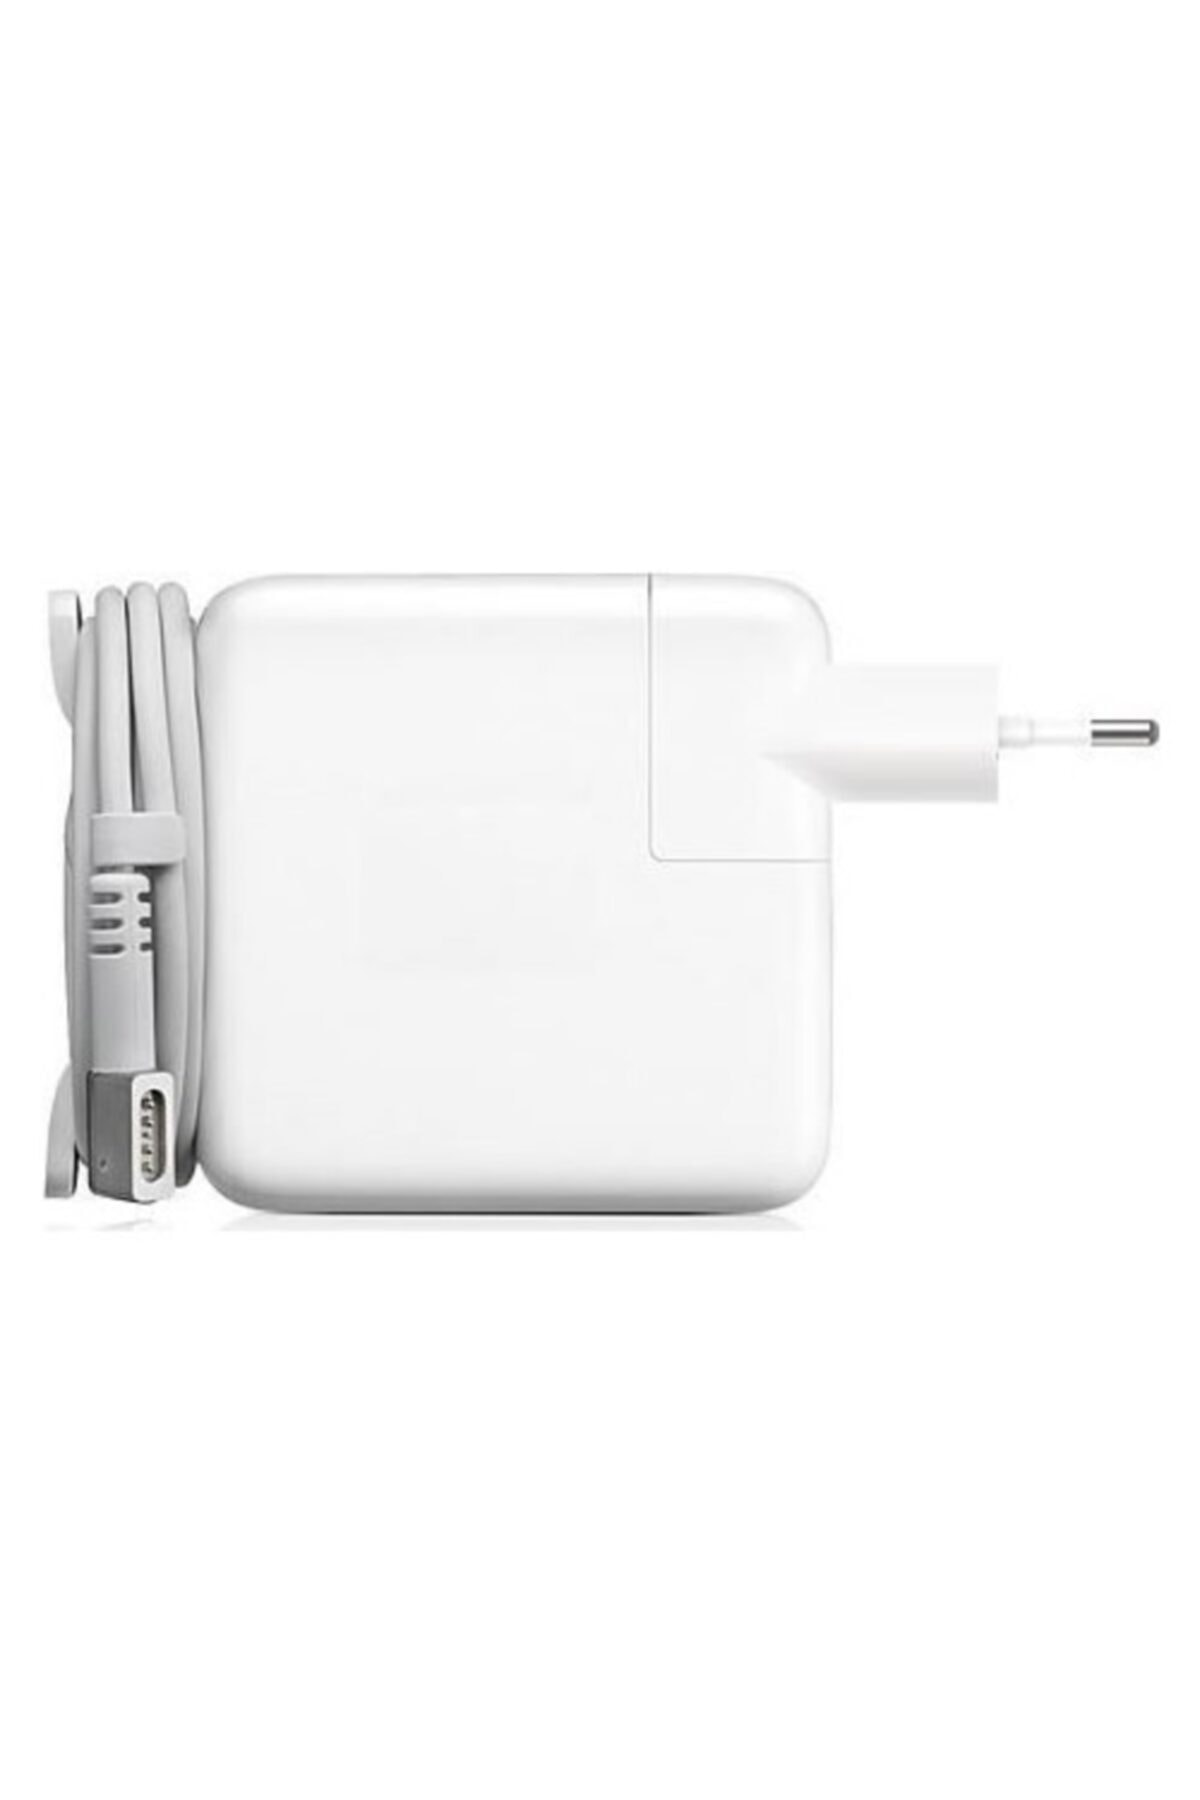 İNFOSTAR Apple Uyumlu Macbook Air A1369 Adaptör Şarj Aleti 1